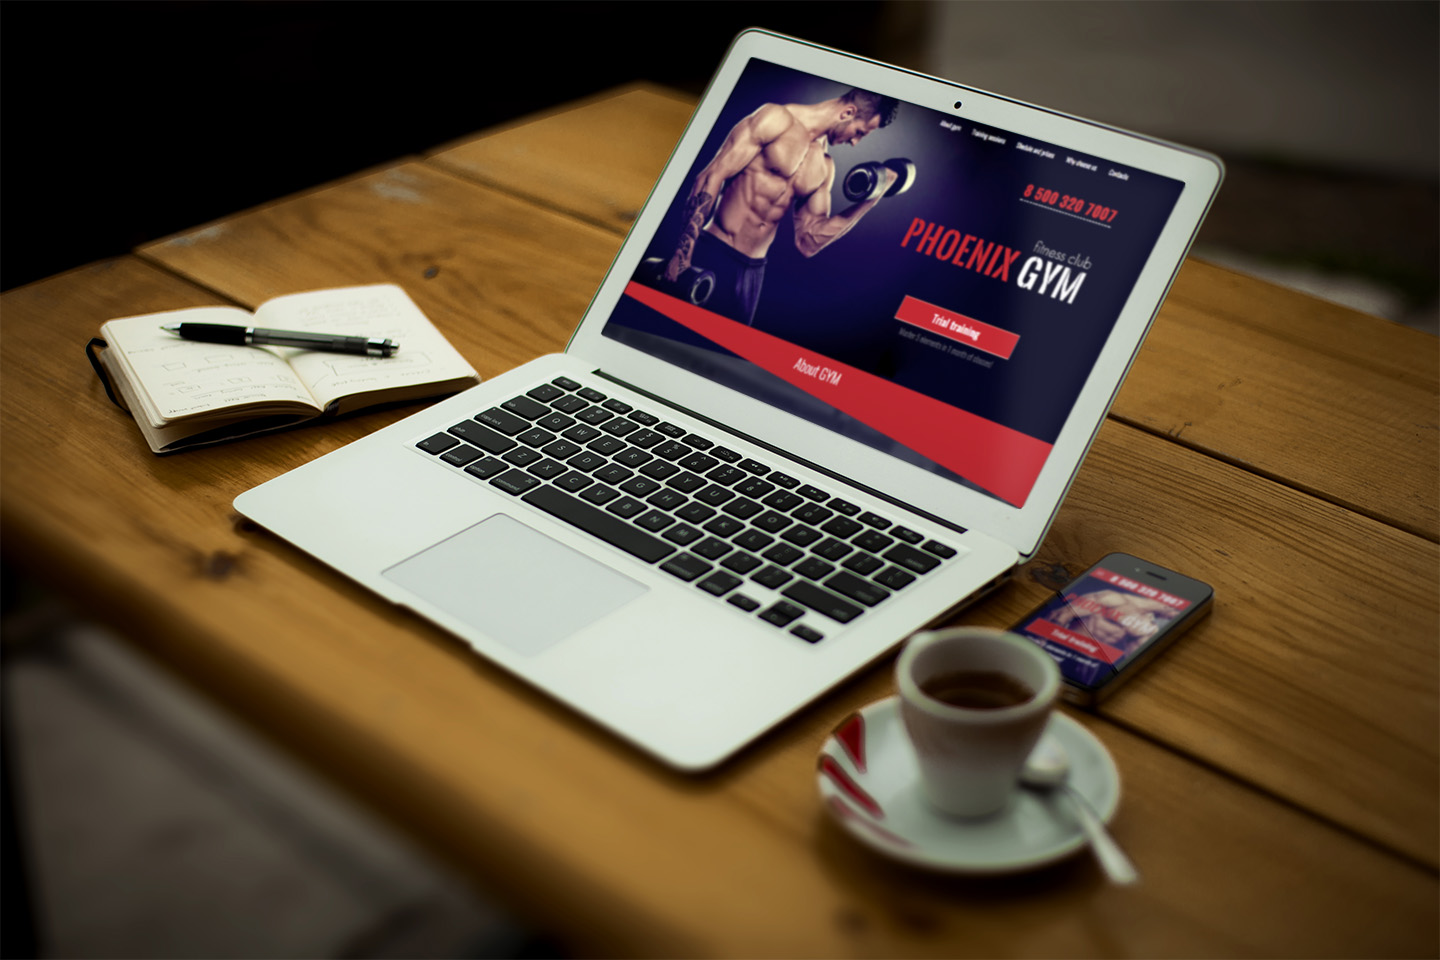 Phoenix Gym - Gym and Fitness Club Responsive HTML Template - 2